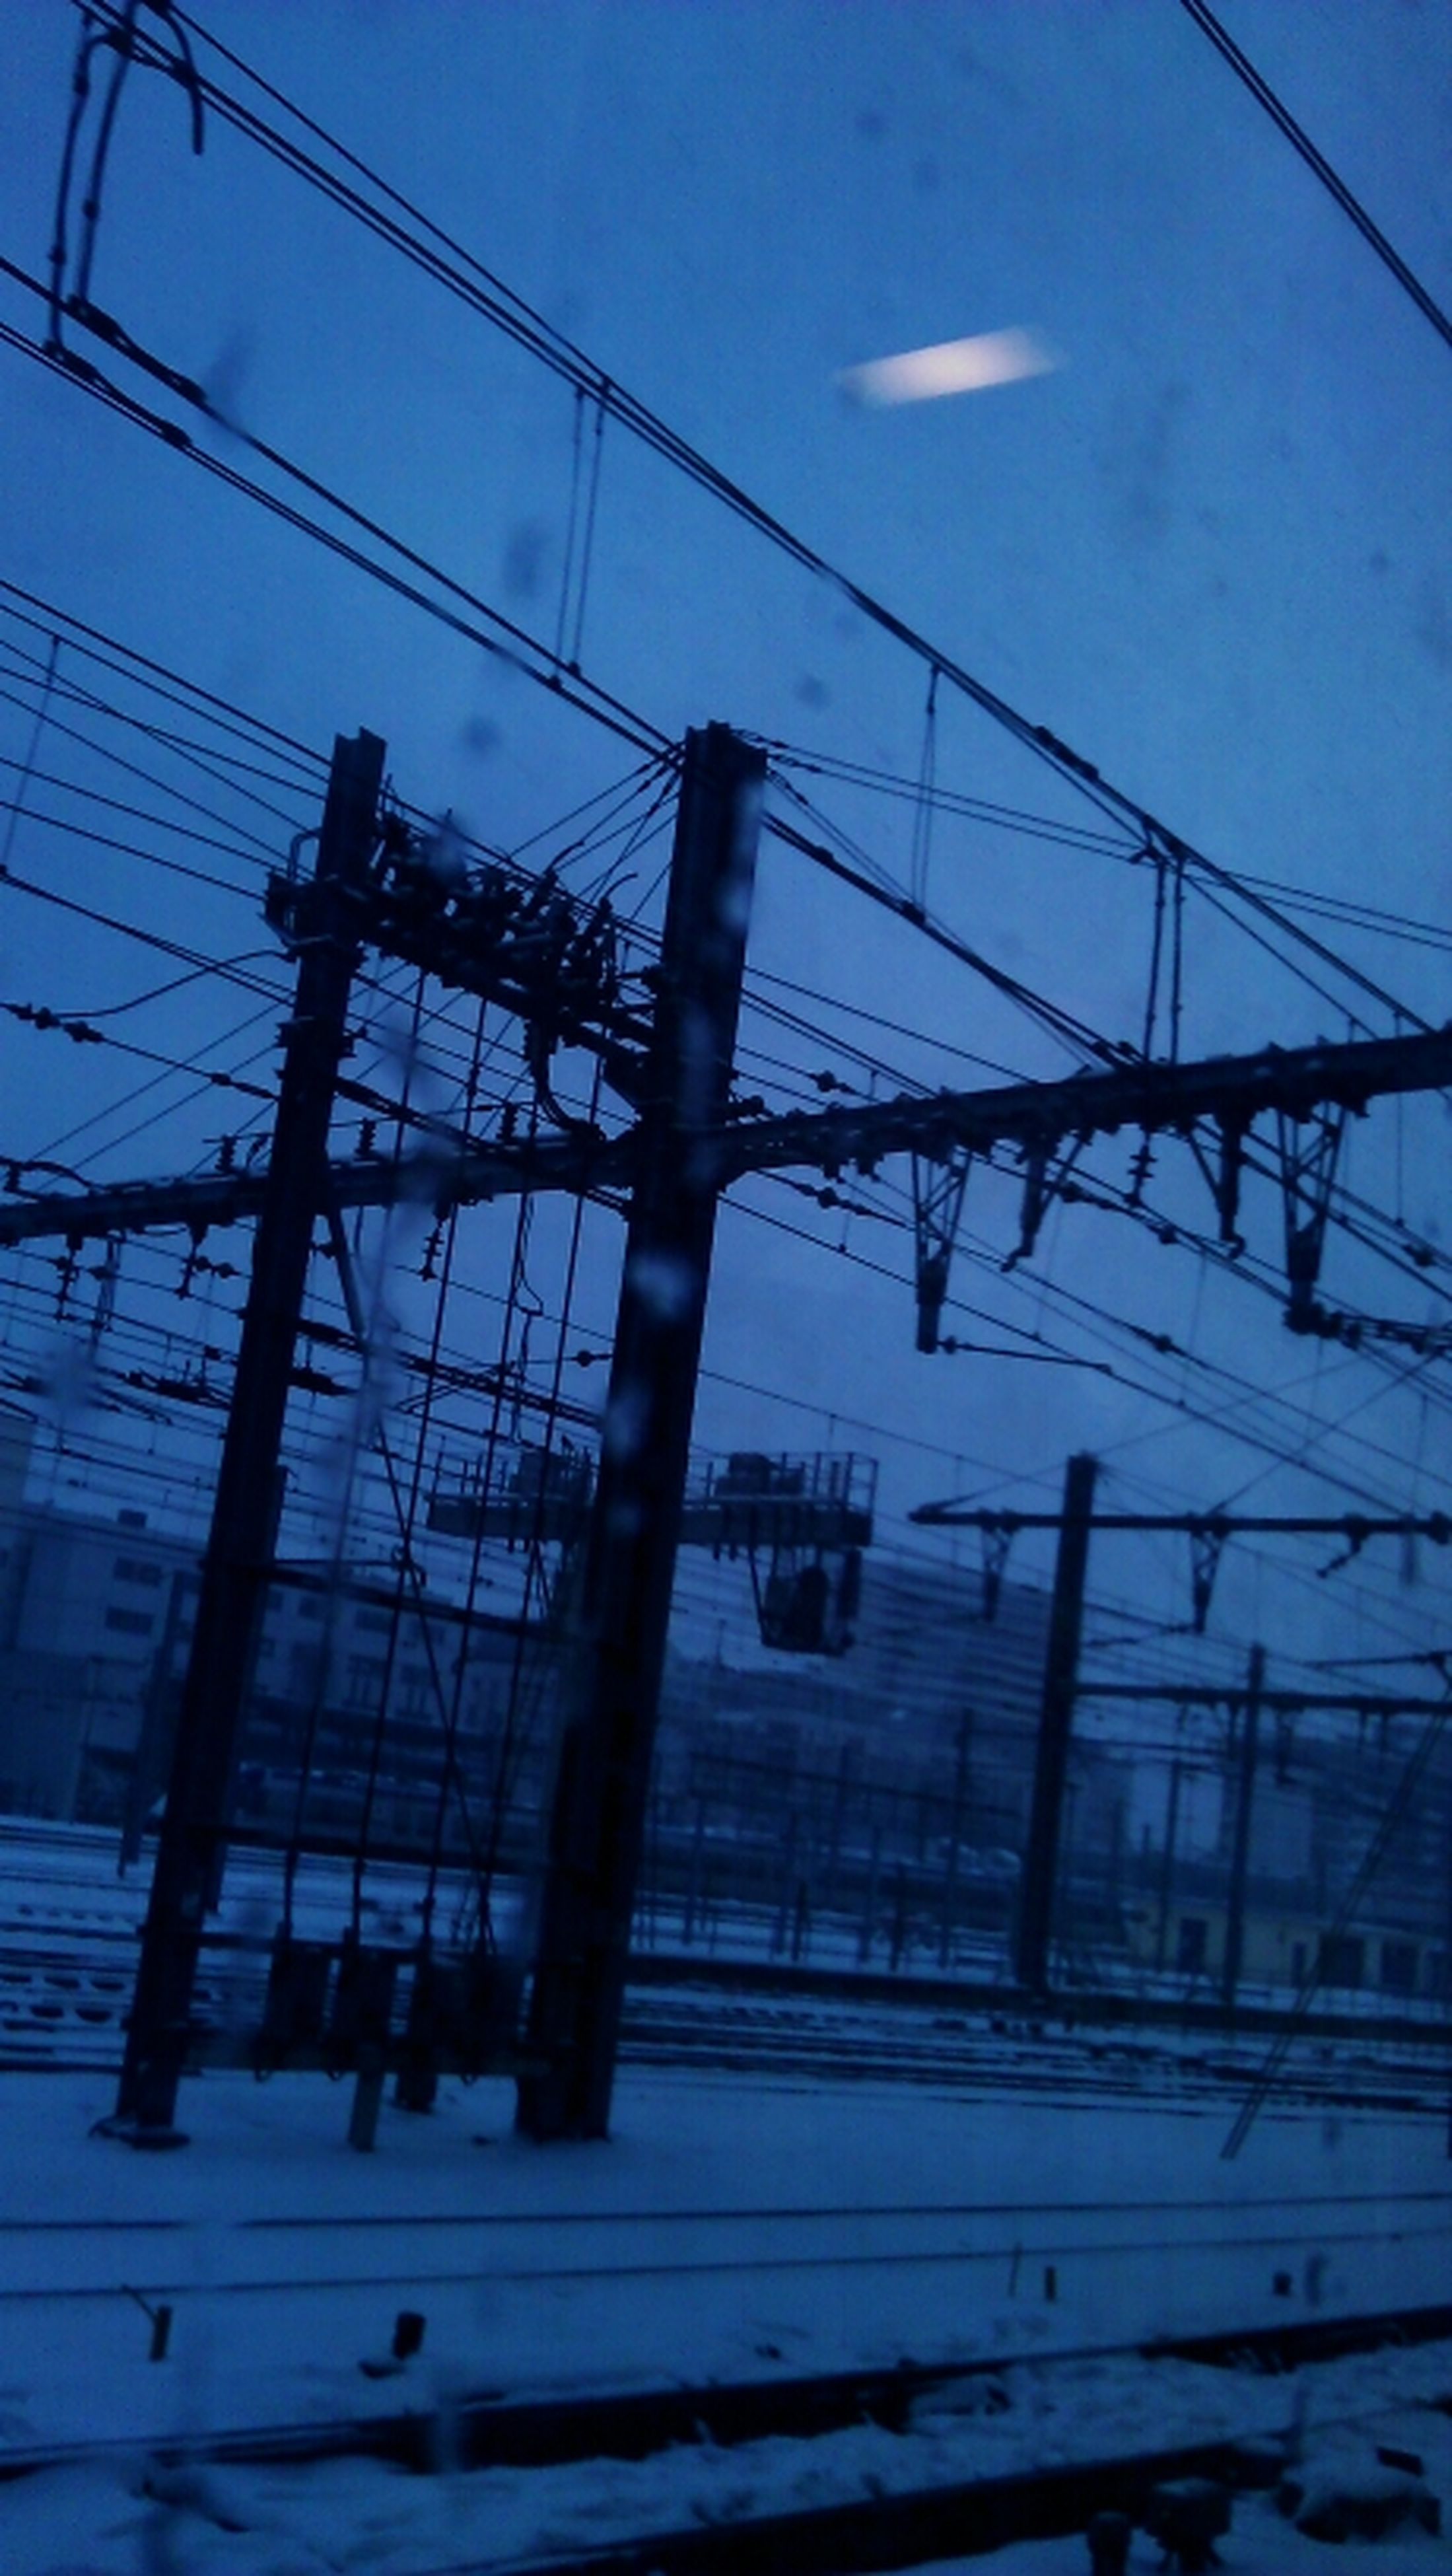 power line, power supply, electricity pylon, sky, electricity, cable, connection, low angle view, fuel and power generation, railroad track, blue, technology, built structure, transportation, no people, dusk, outdoors, cloud - sky, day, complexity